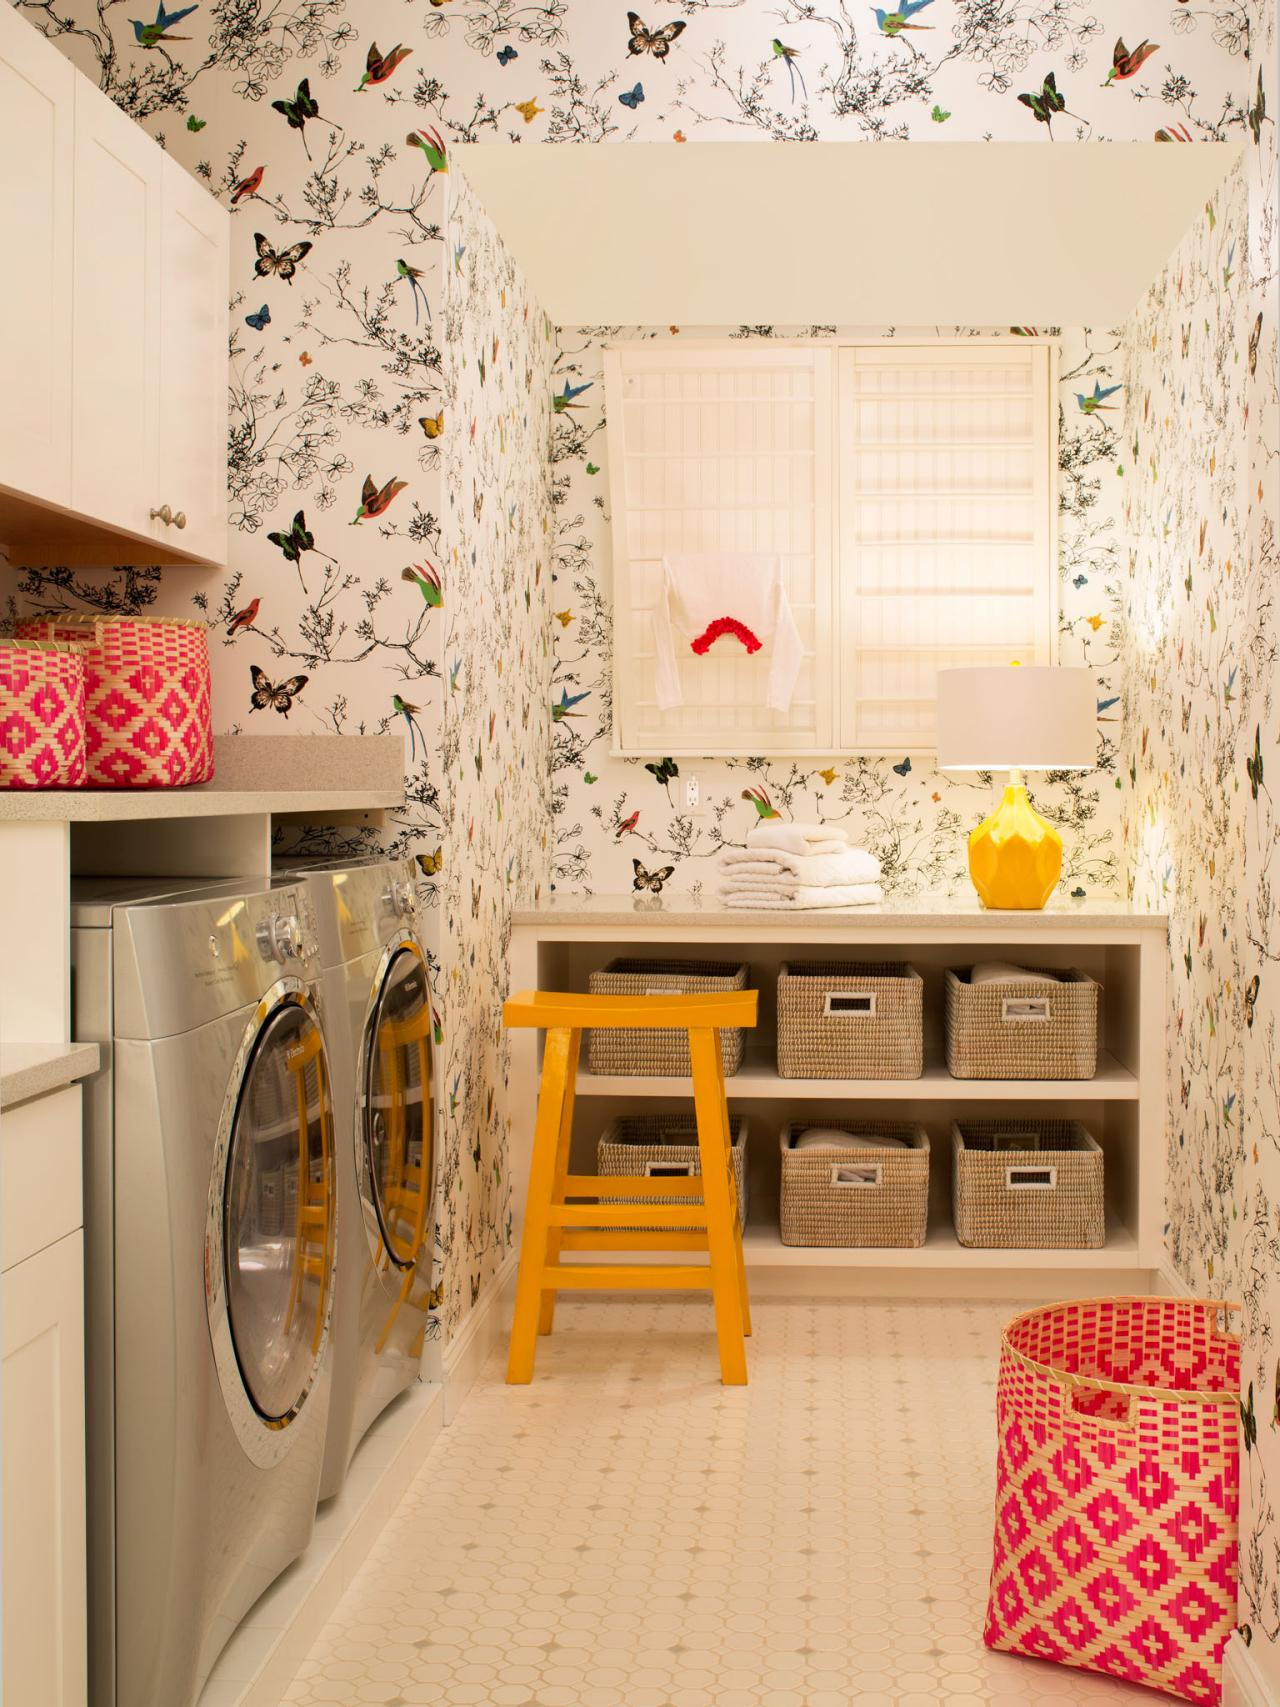 Laundry Room With Butterfly Wallpaper Rental Laundry Room Ideas 1280x1707 Wallpaper Teahub Io